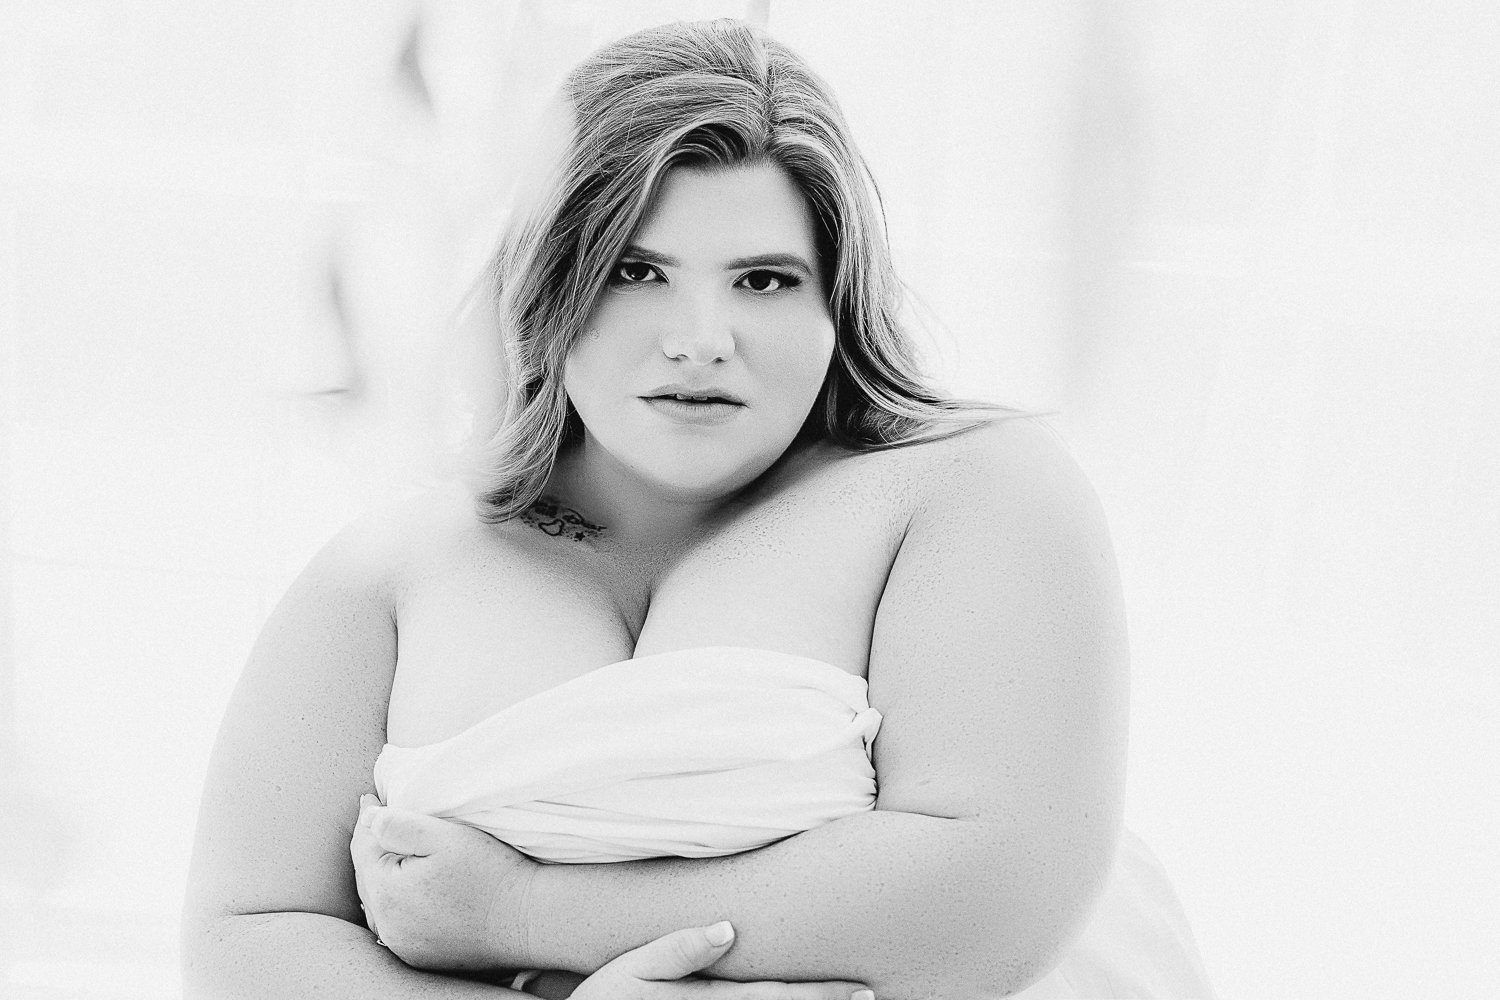 boudoir-photography-nashville-smith-030-2